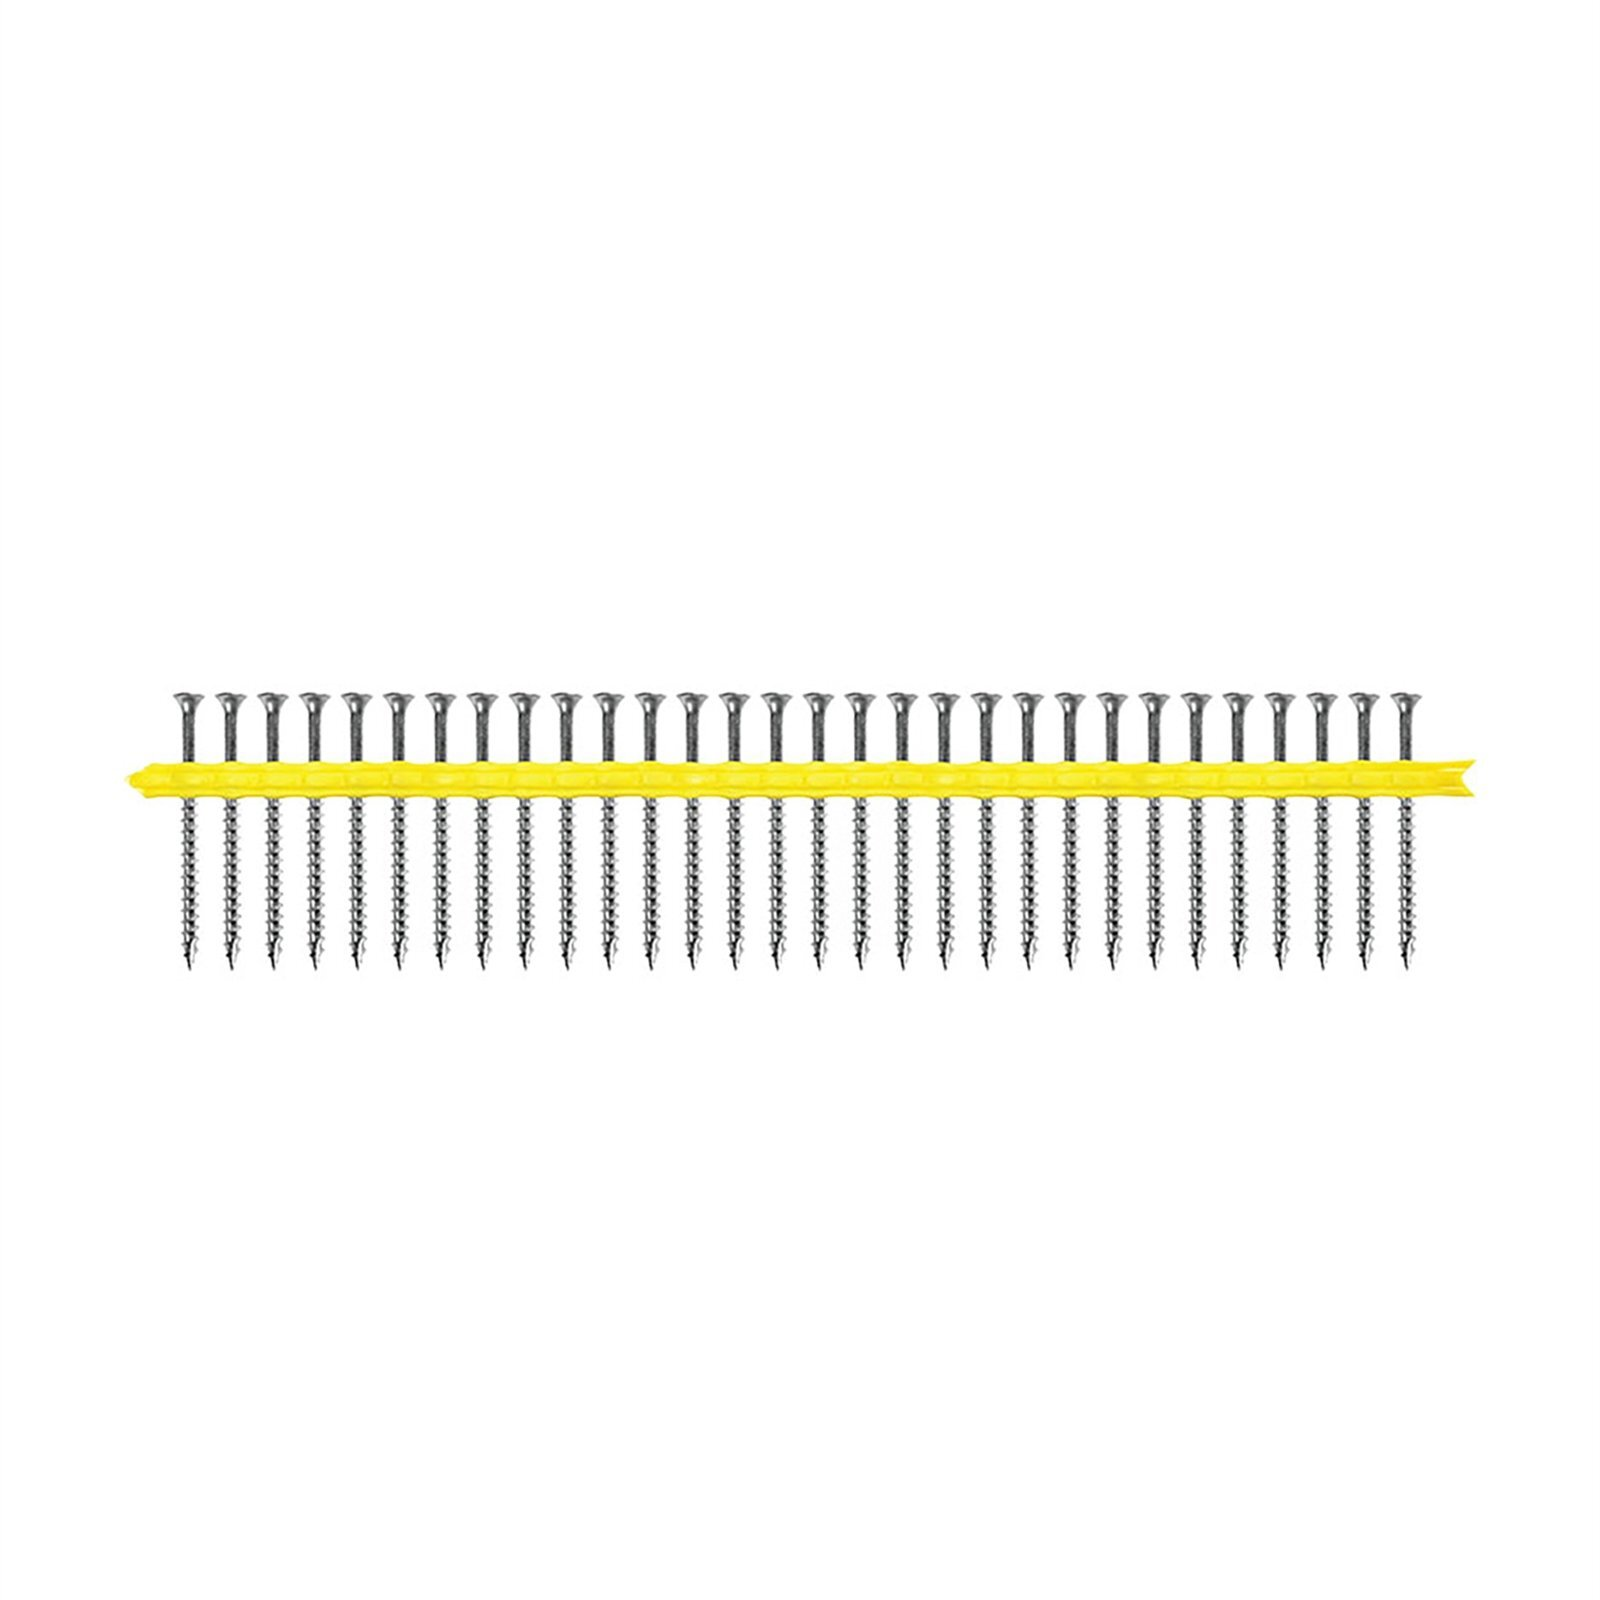 Simpson Strong-Tie 10g x 75mm Quik Drive Flooring And Decking Collated Screws - 1000 Pack